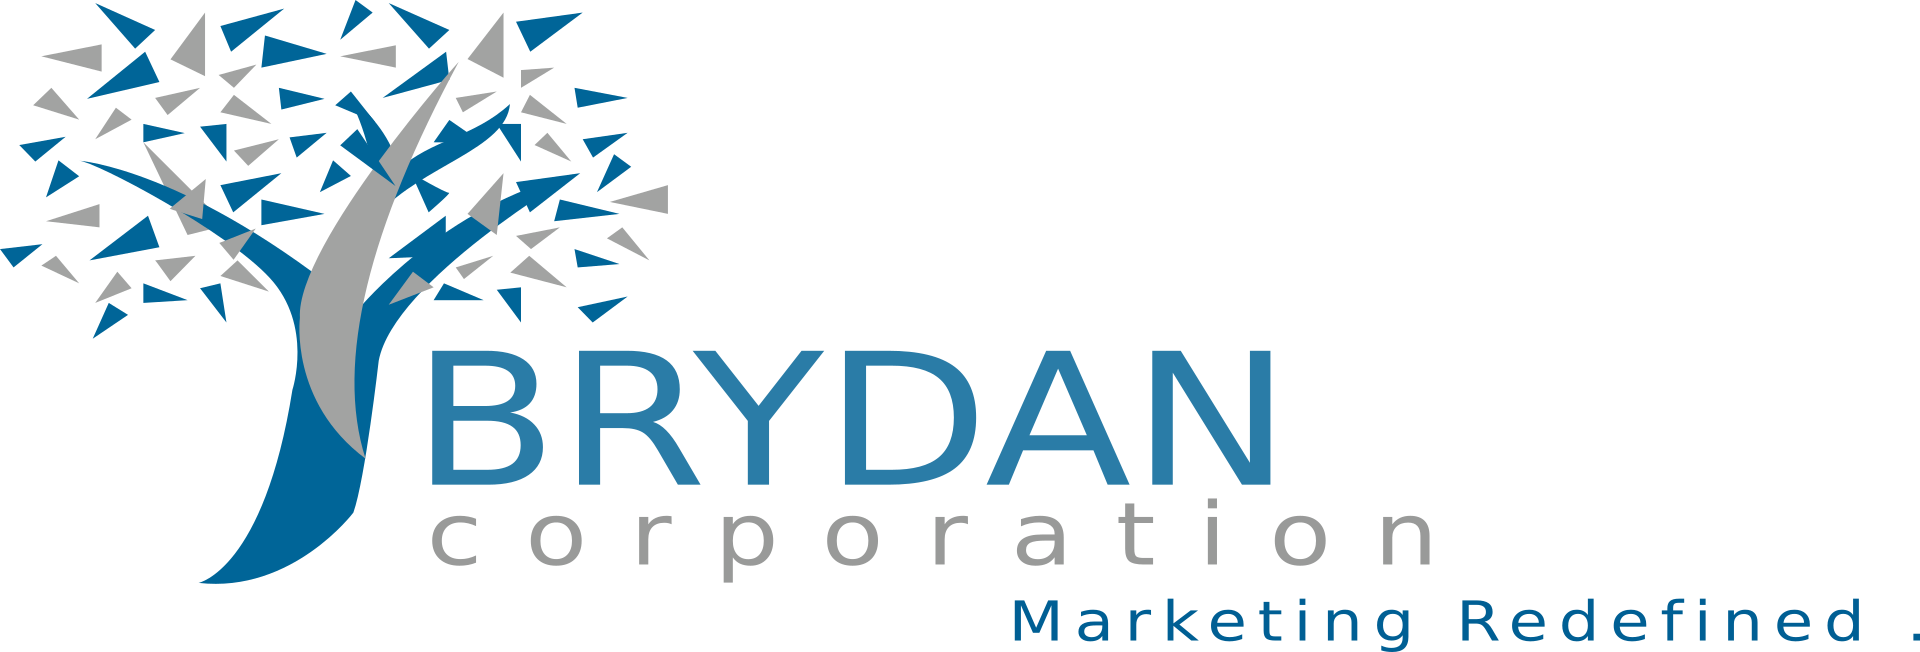 Brydan Corporation Logo